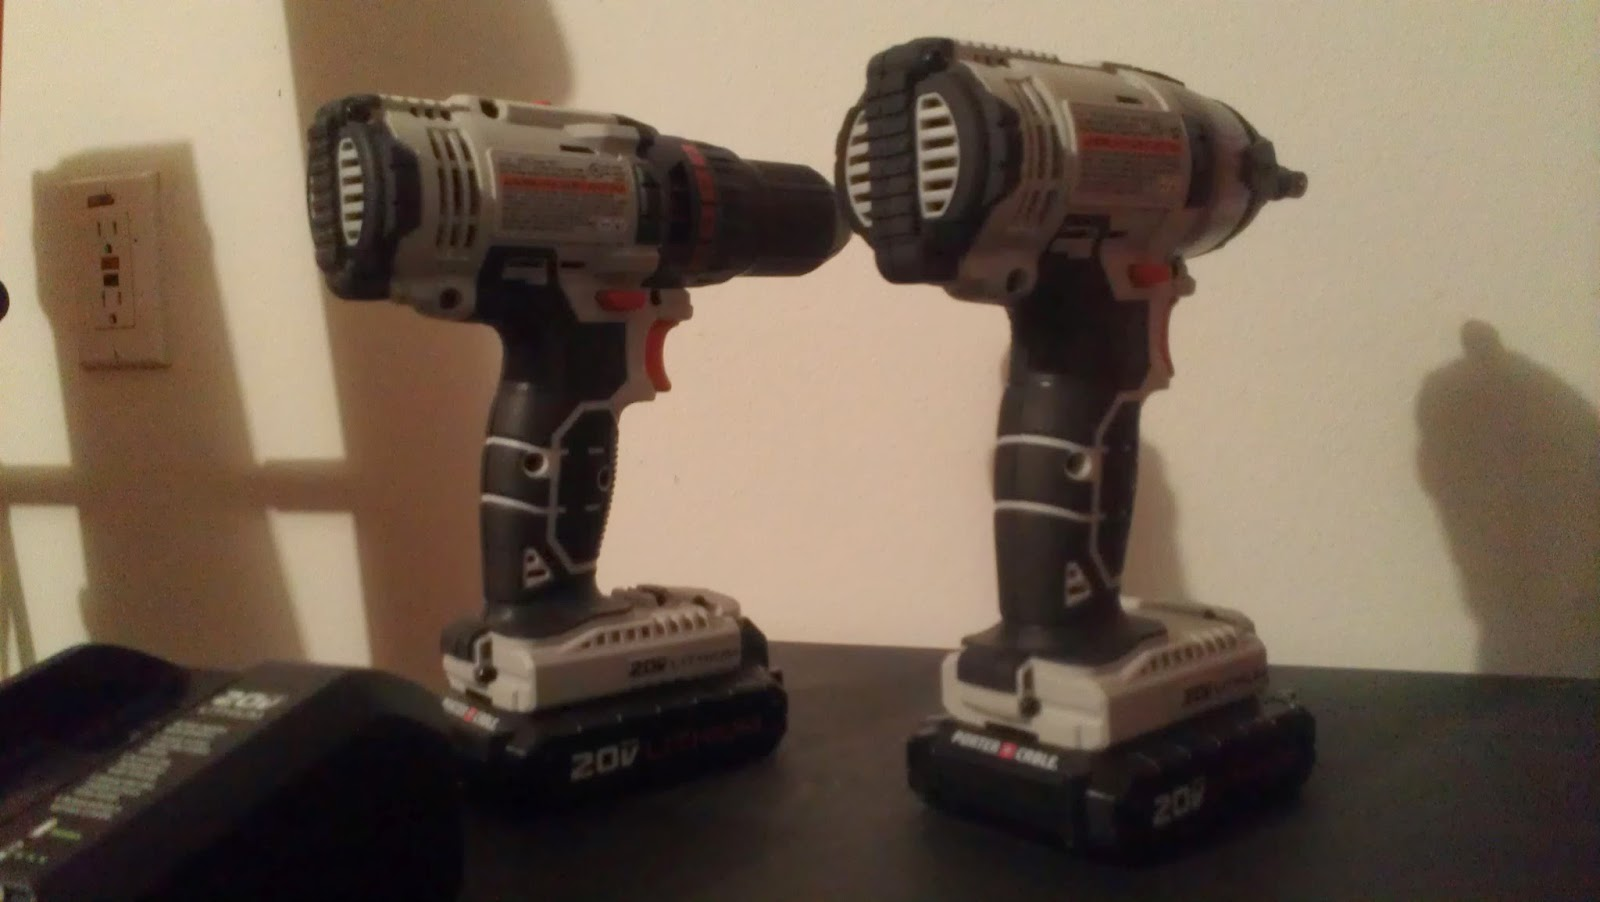 Porter cable 20v impact drill review